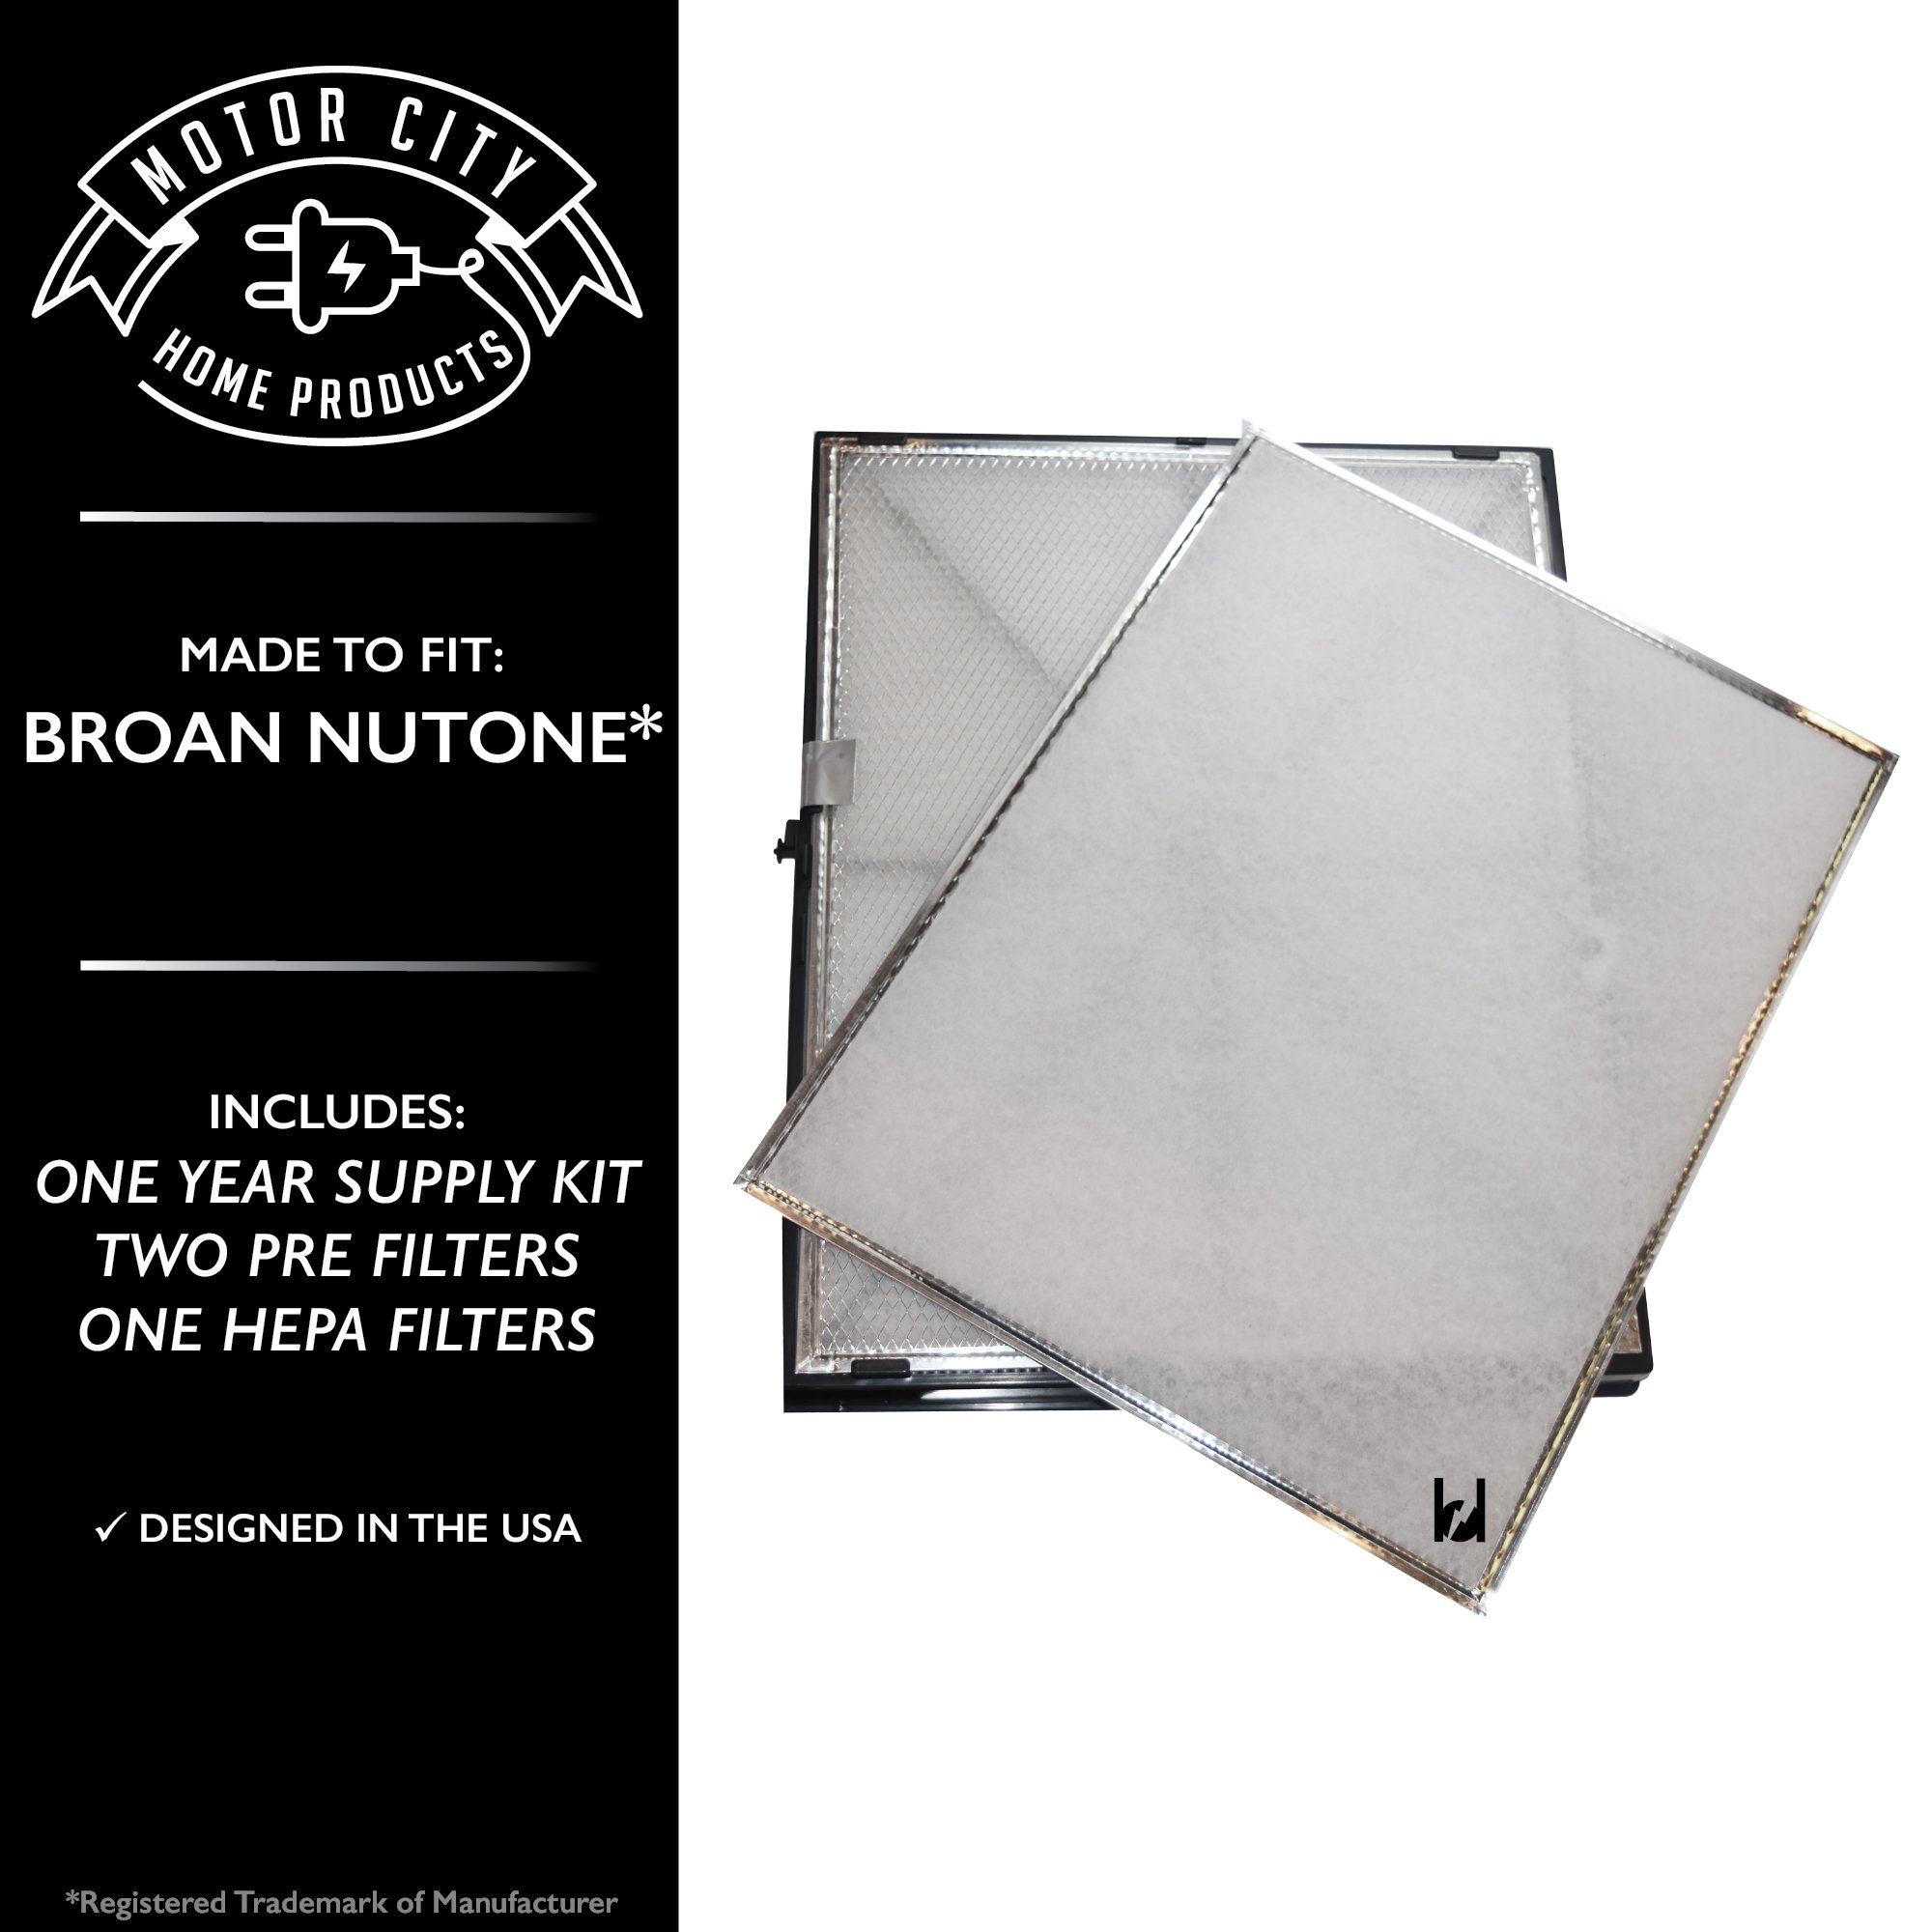 Broan Nutone GSFH1K ACCGSFHP2 Compatible Aftermarket Air Purifier 1 Year Supply Kit Filter Replacement Parts. Includes 2 Pre & 1 HEPA Filters; Motor City Home Products Brand (1)